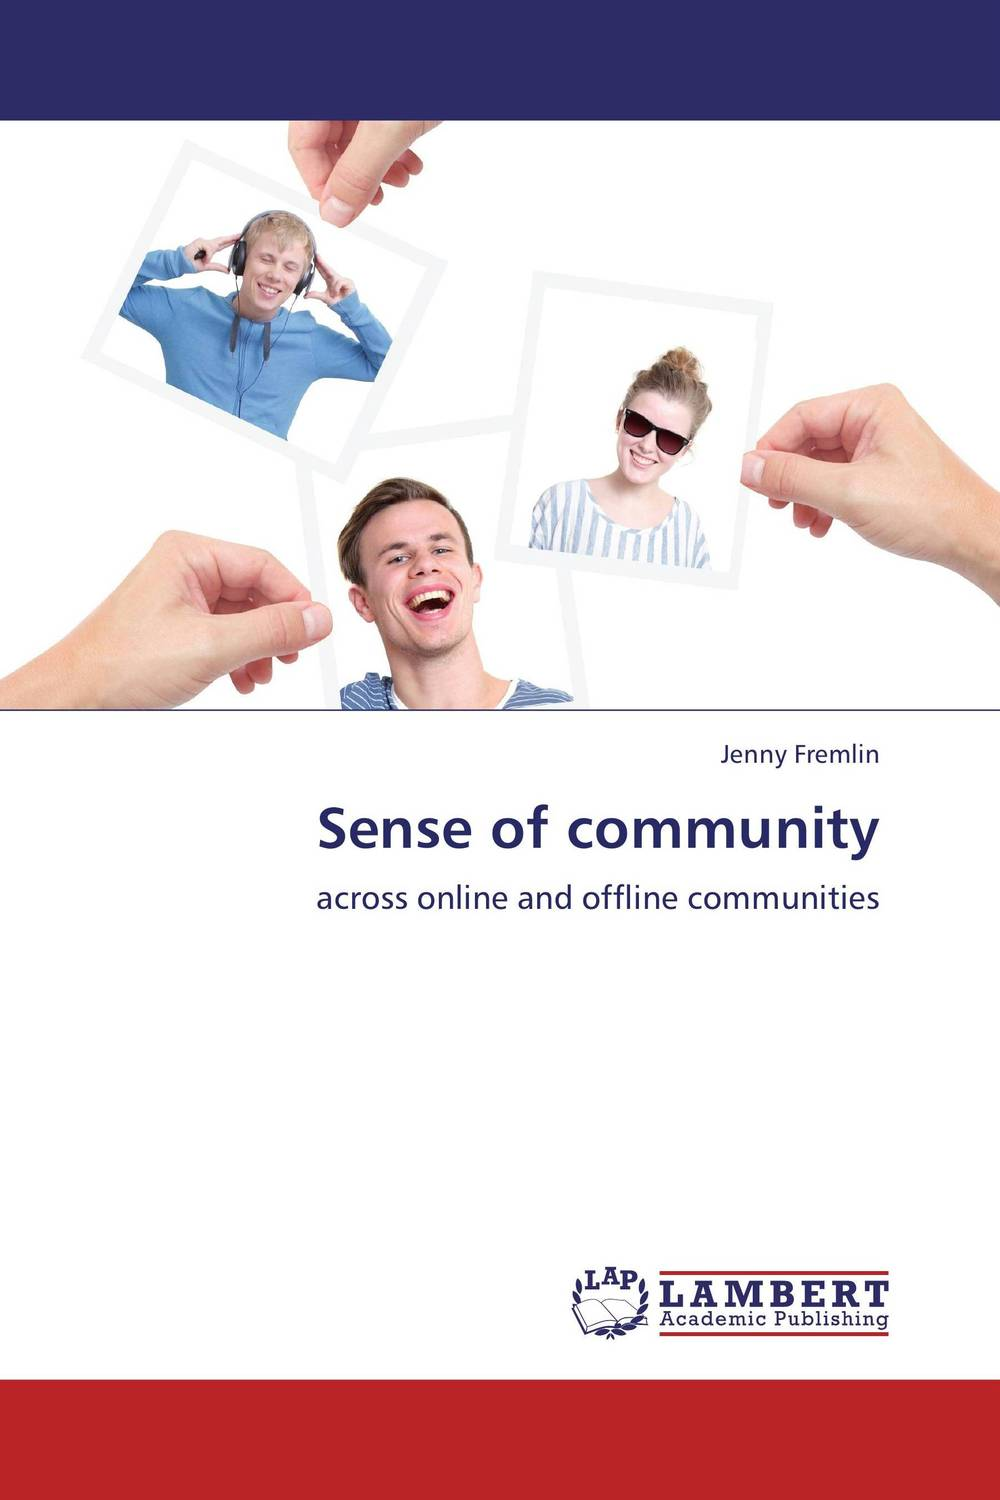 Sense of community journalists and online communities